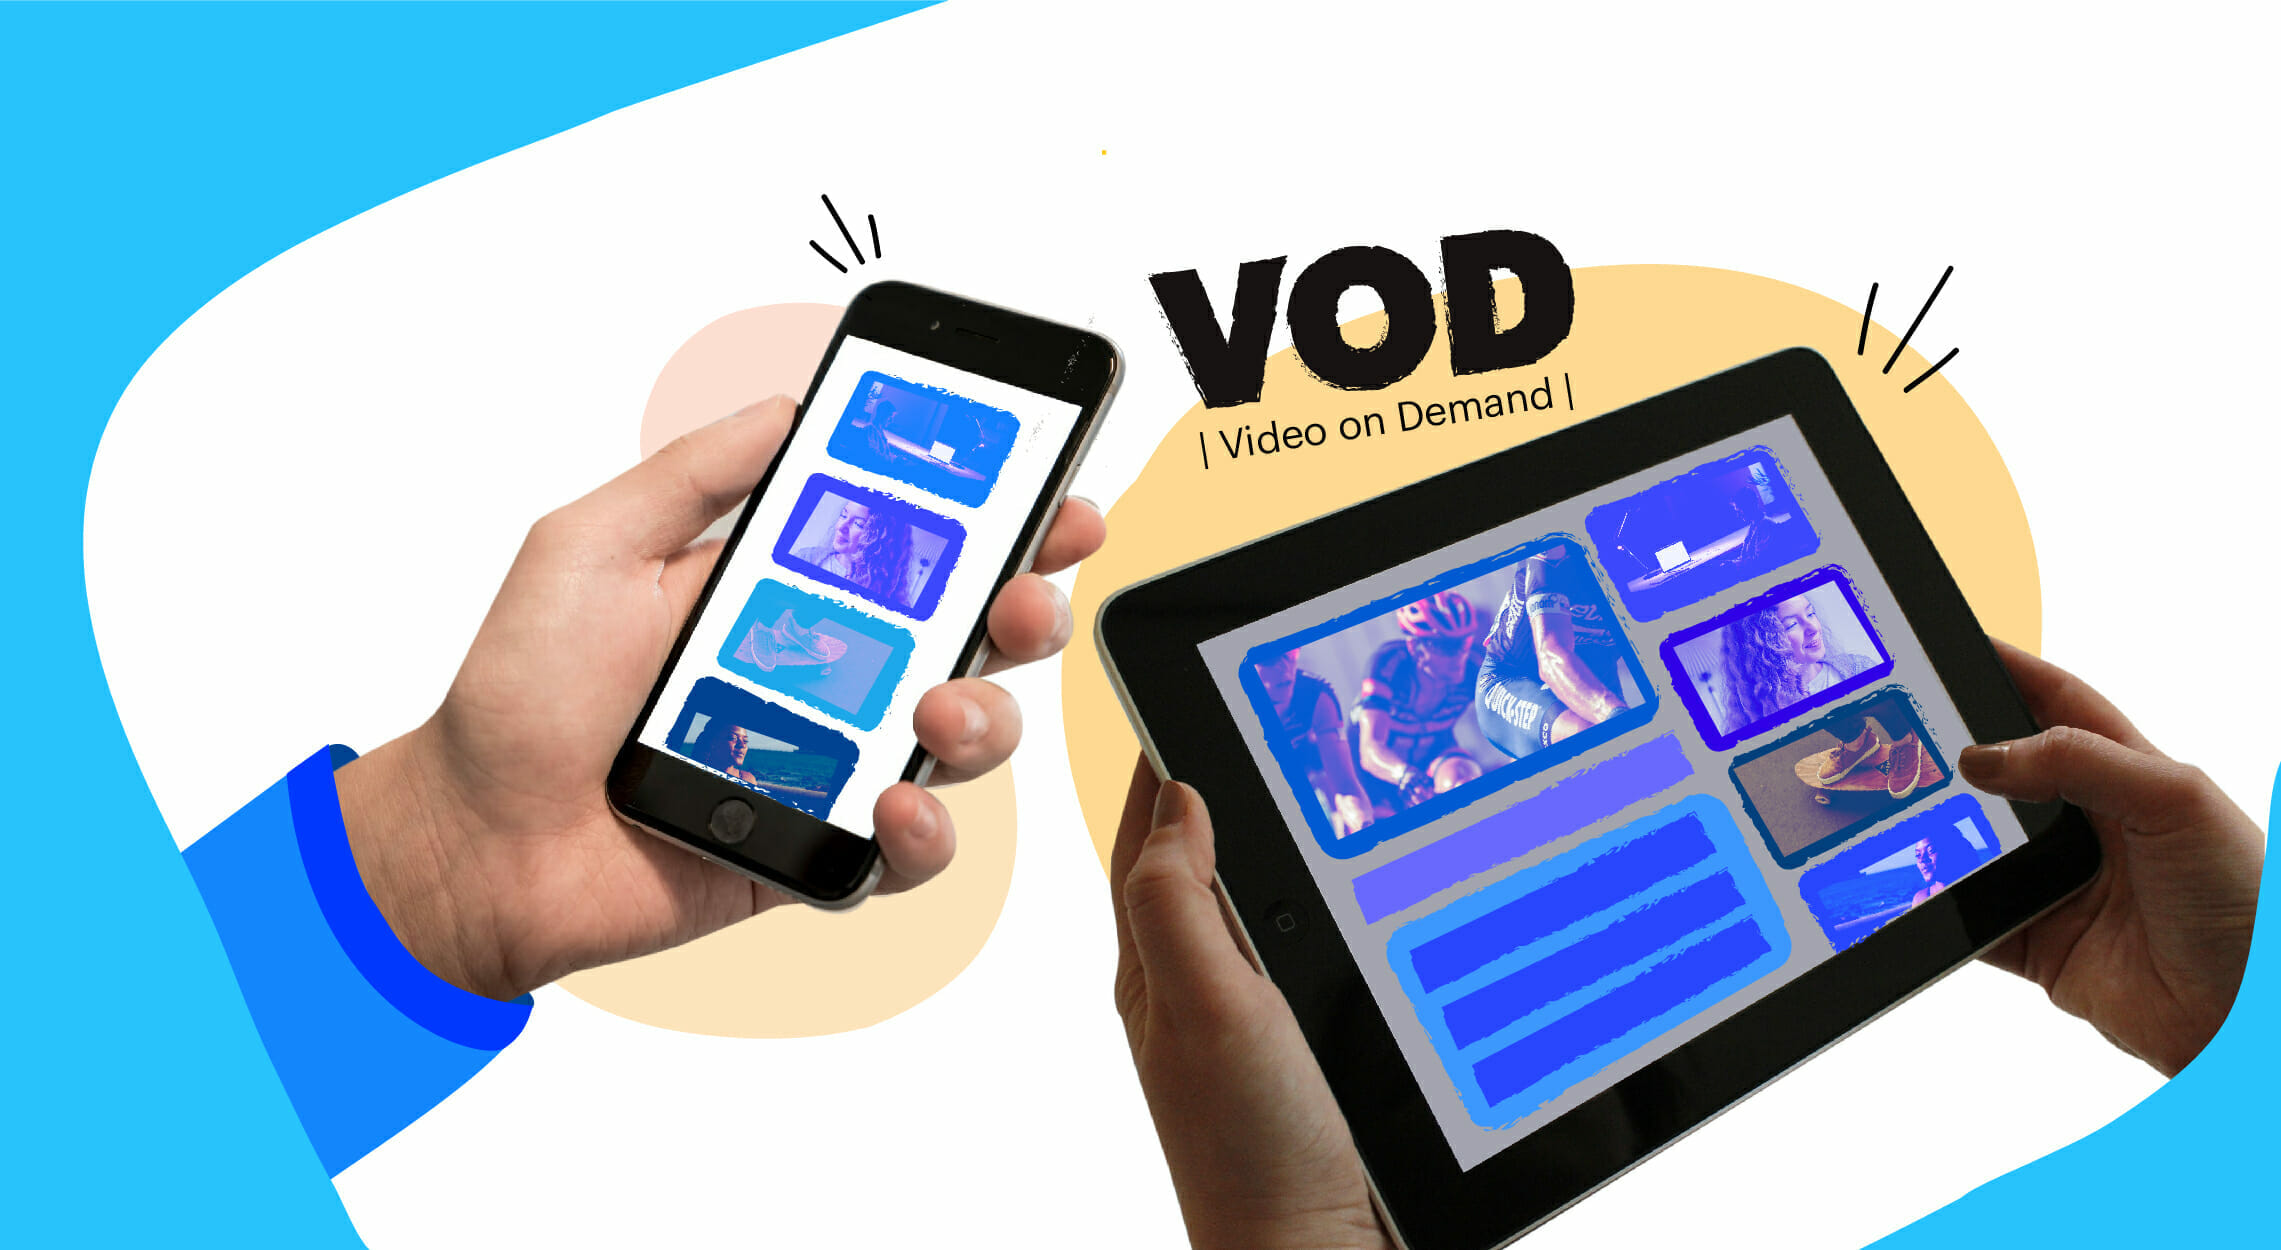 What is VOD